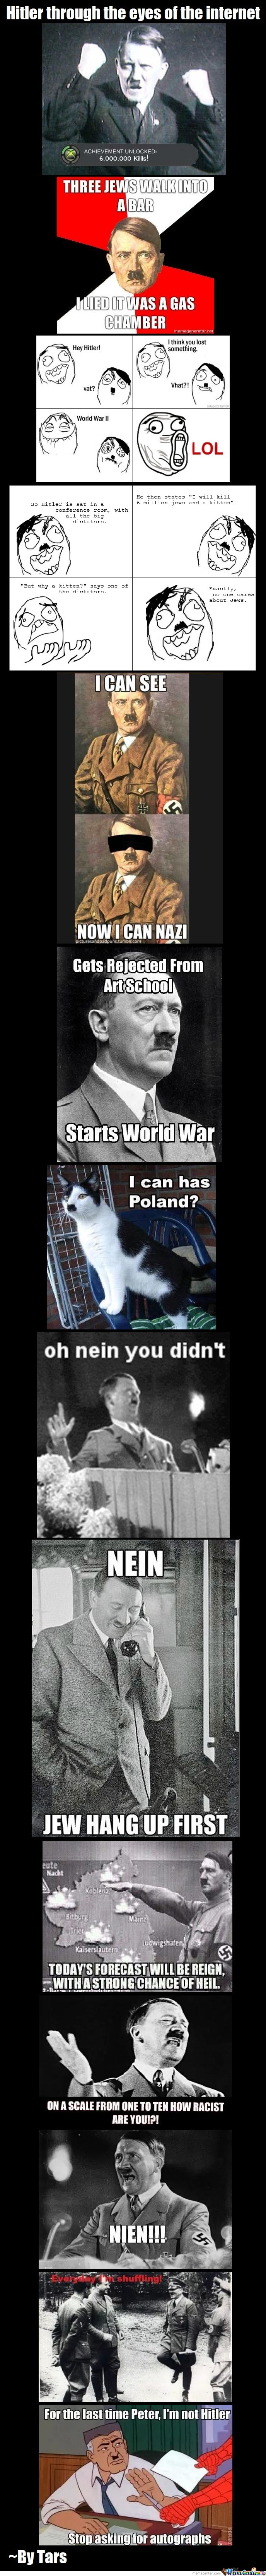 Hitler Seen By Internetters